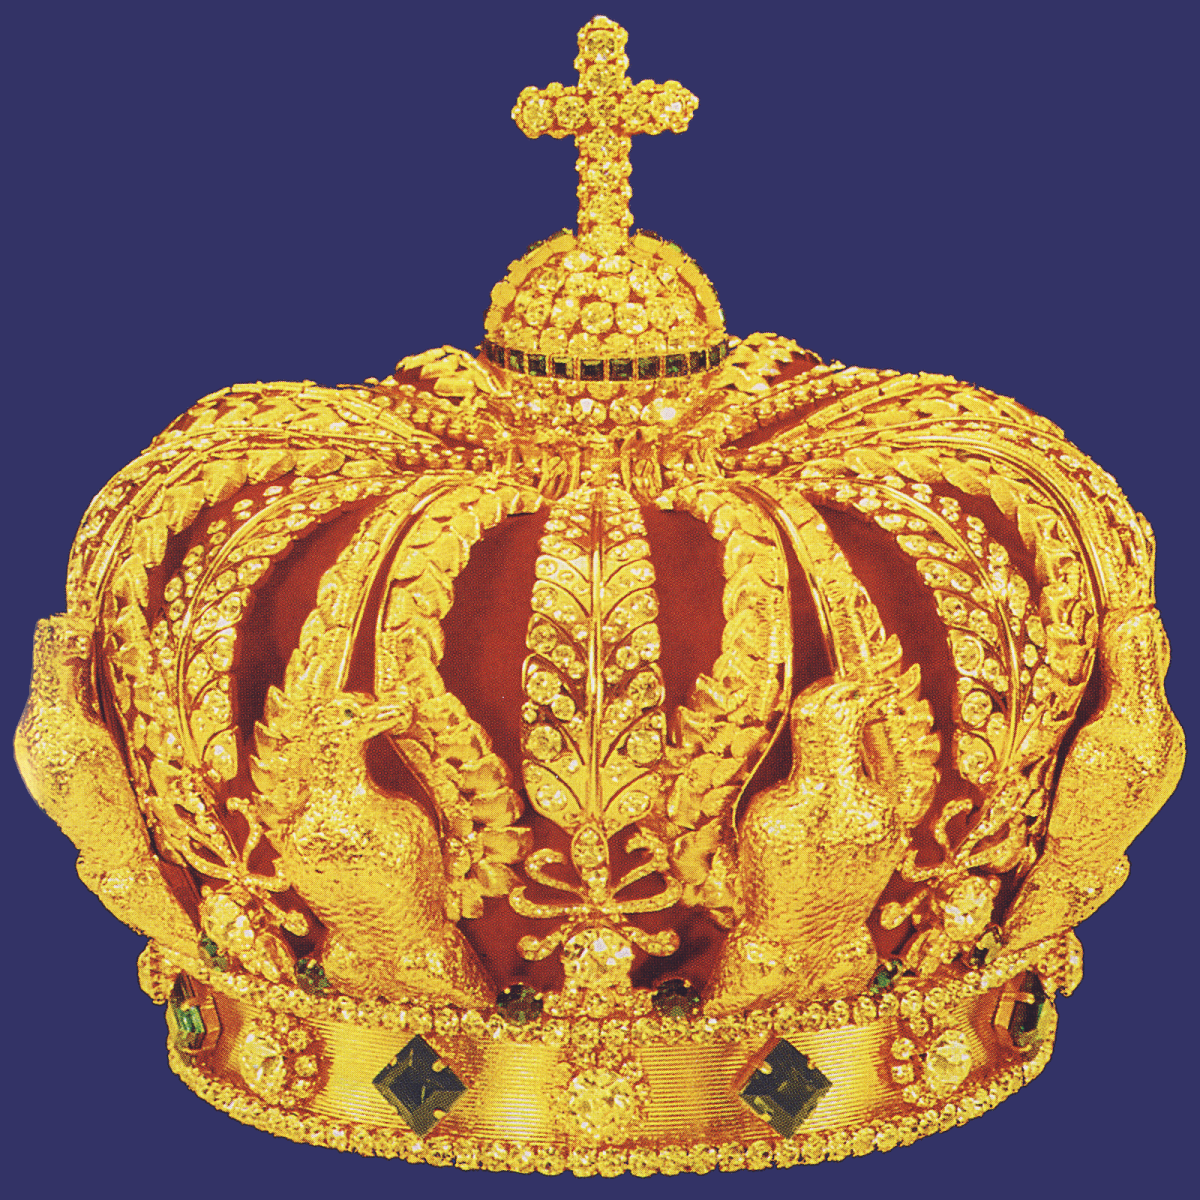 Http Commons Wikimedia Org Wiki File Imperial Crown Of Napoleon Iii Reproduction By Abeler Wuppertal Png